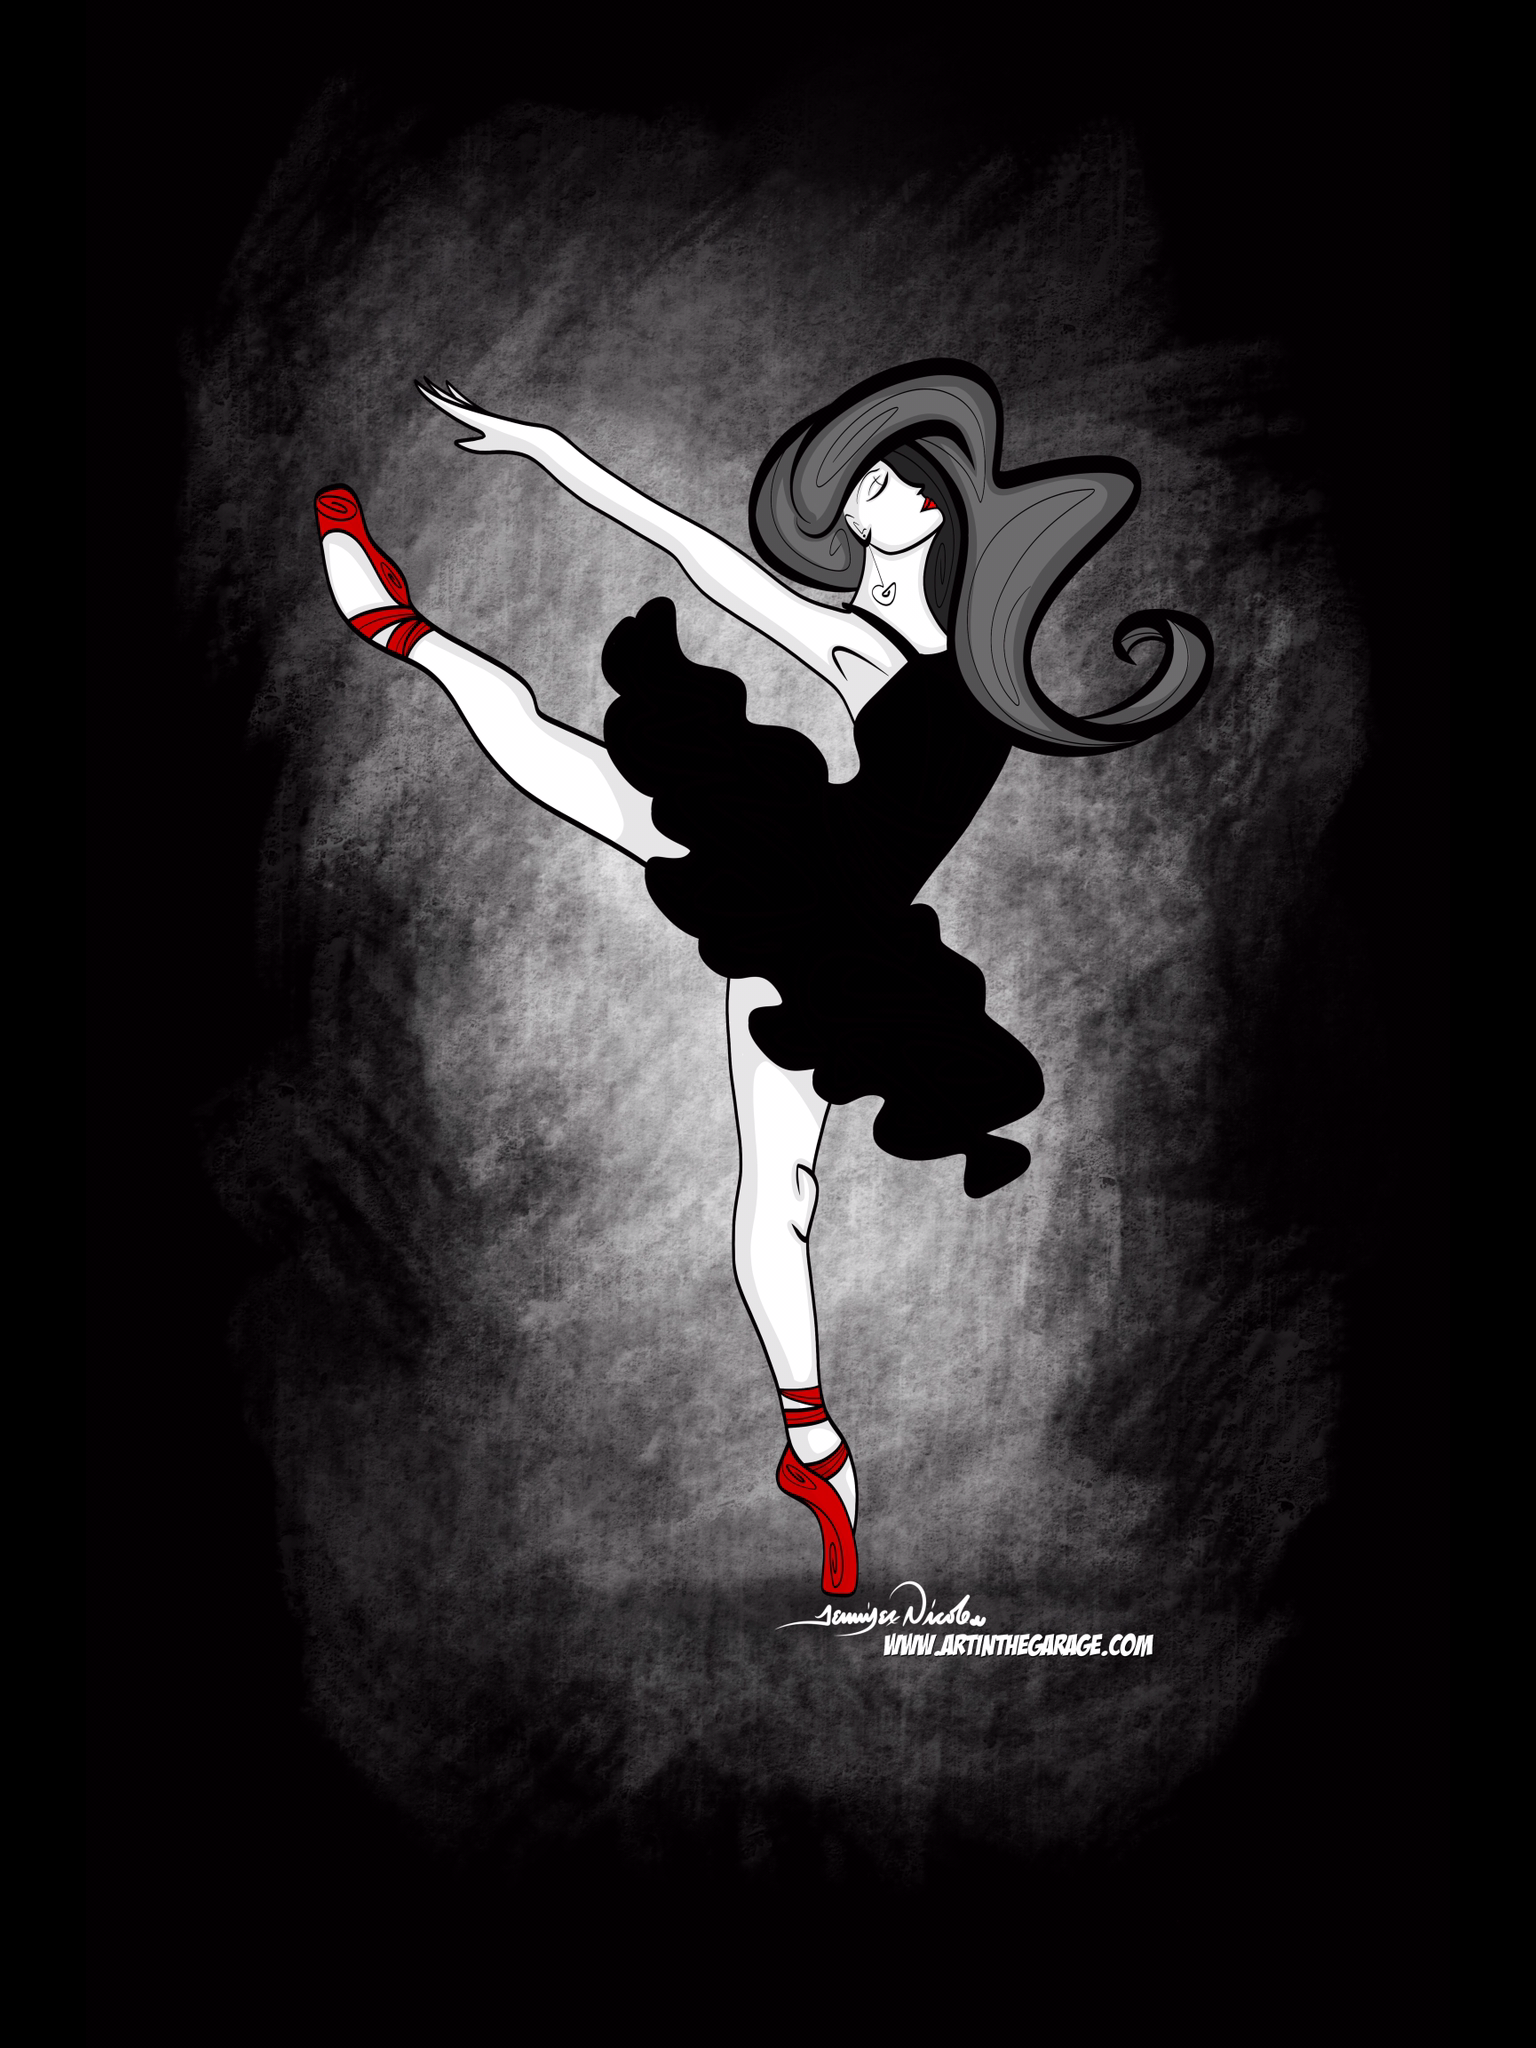 12-16-19 Ballerina With Red Shoes Dark H